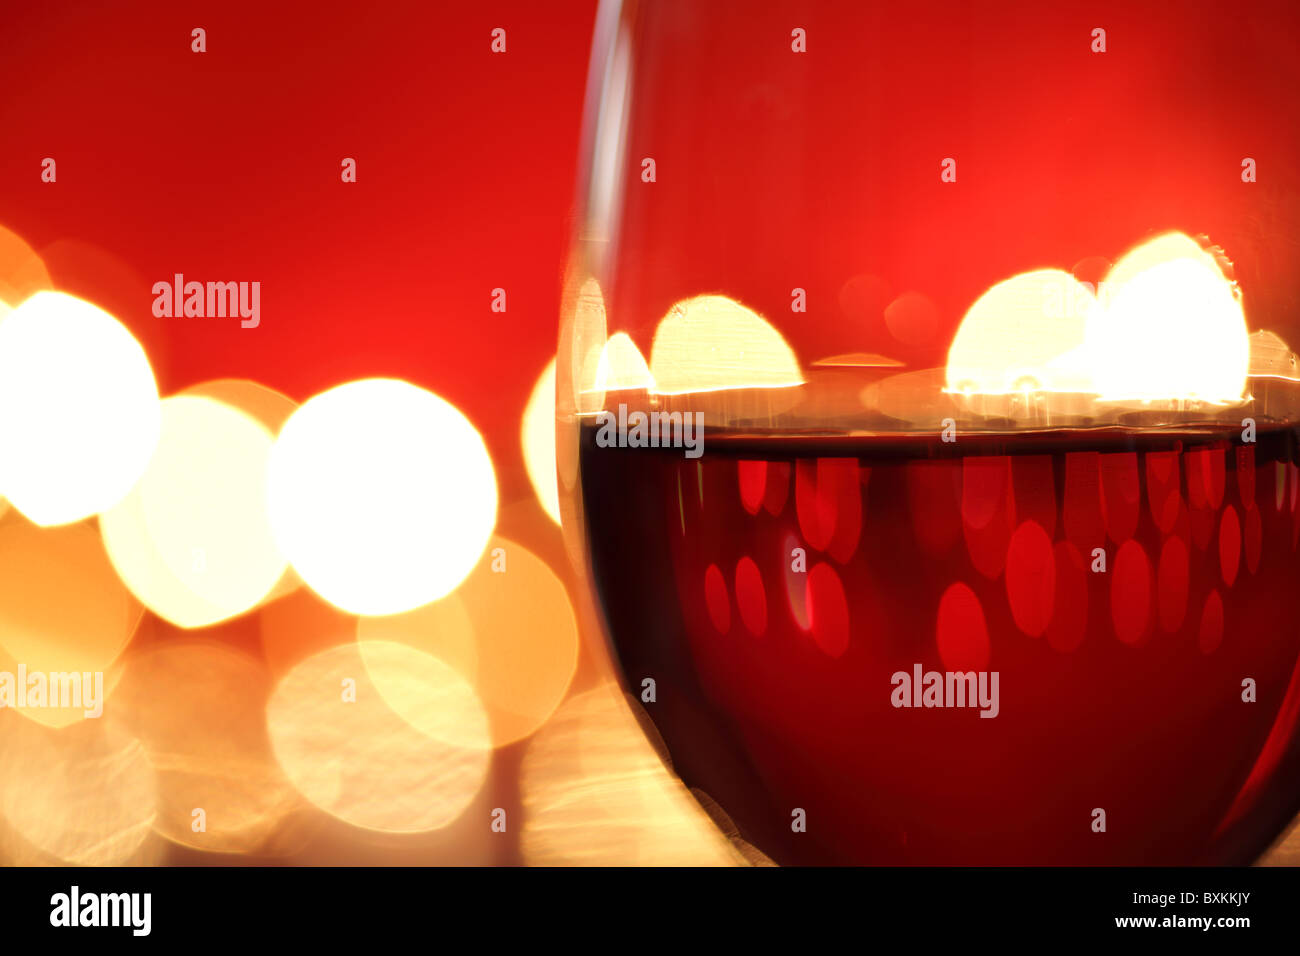 Glass of red wine against defocussed lights - Stock Image